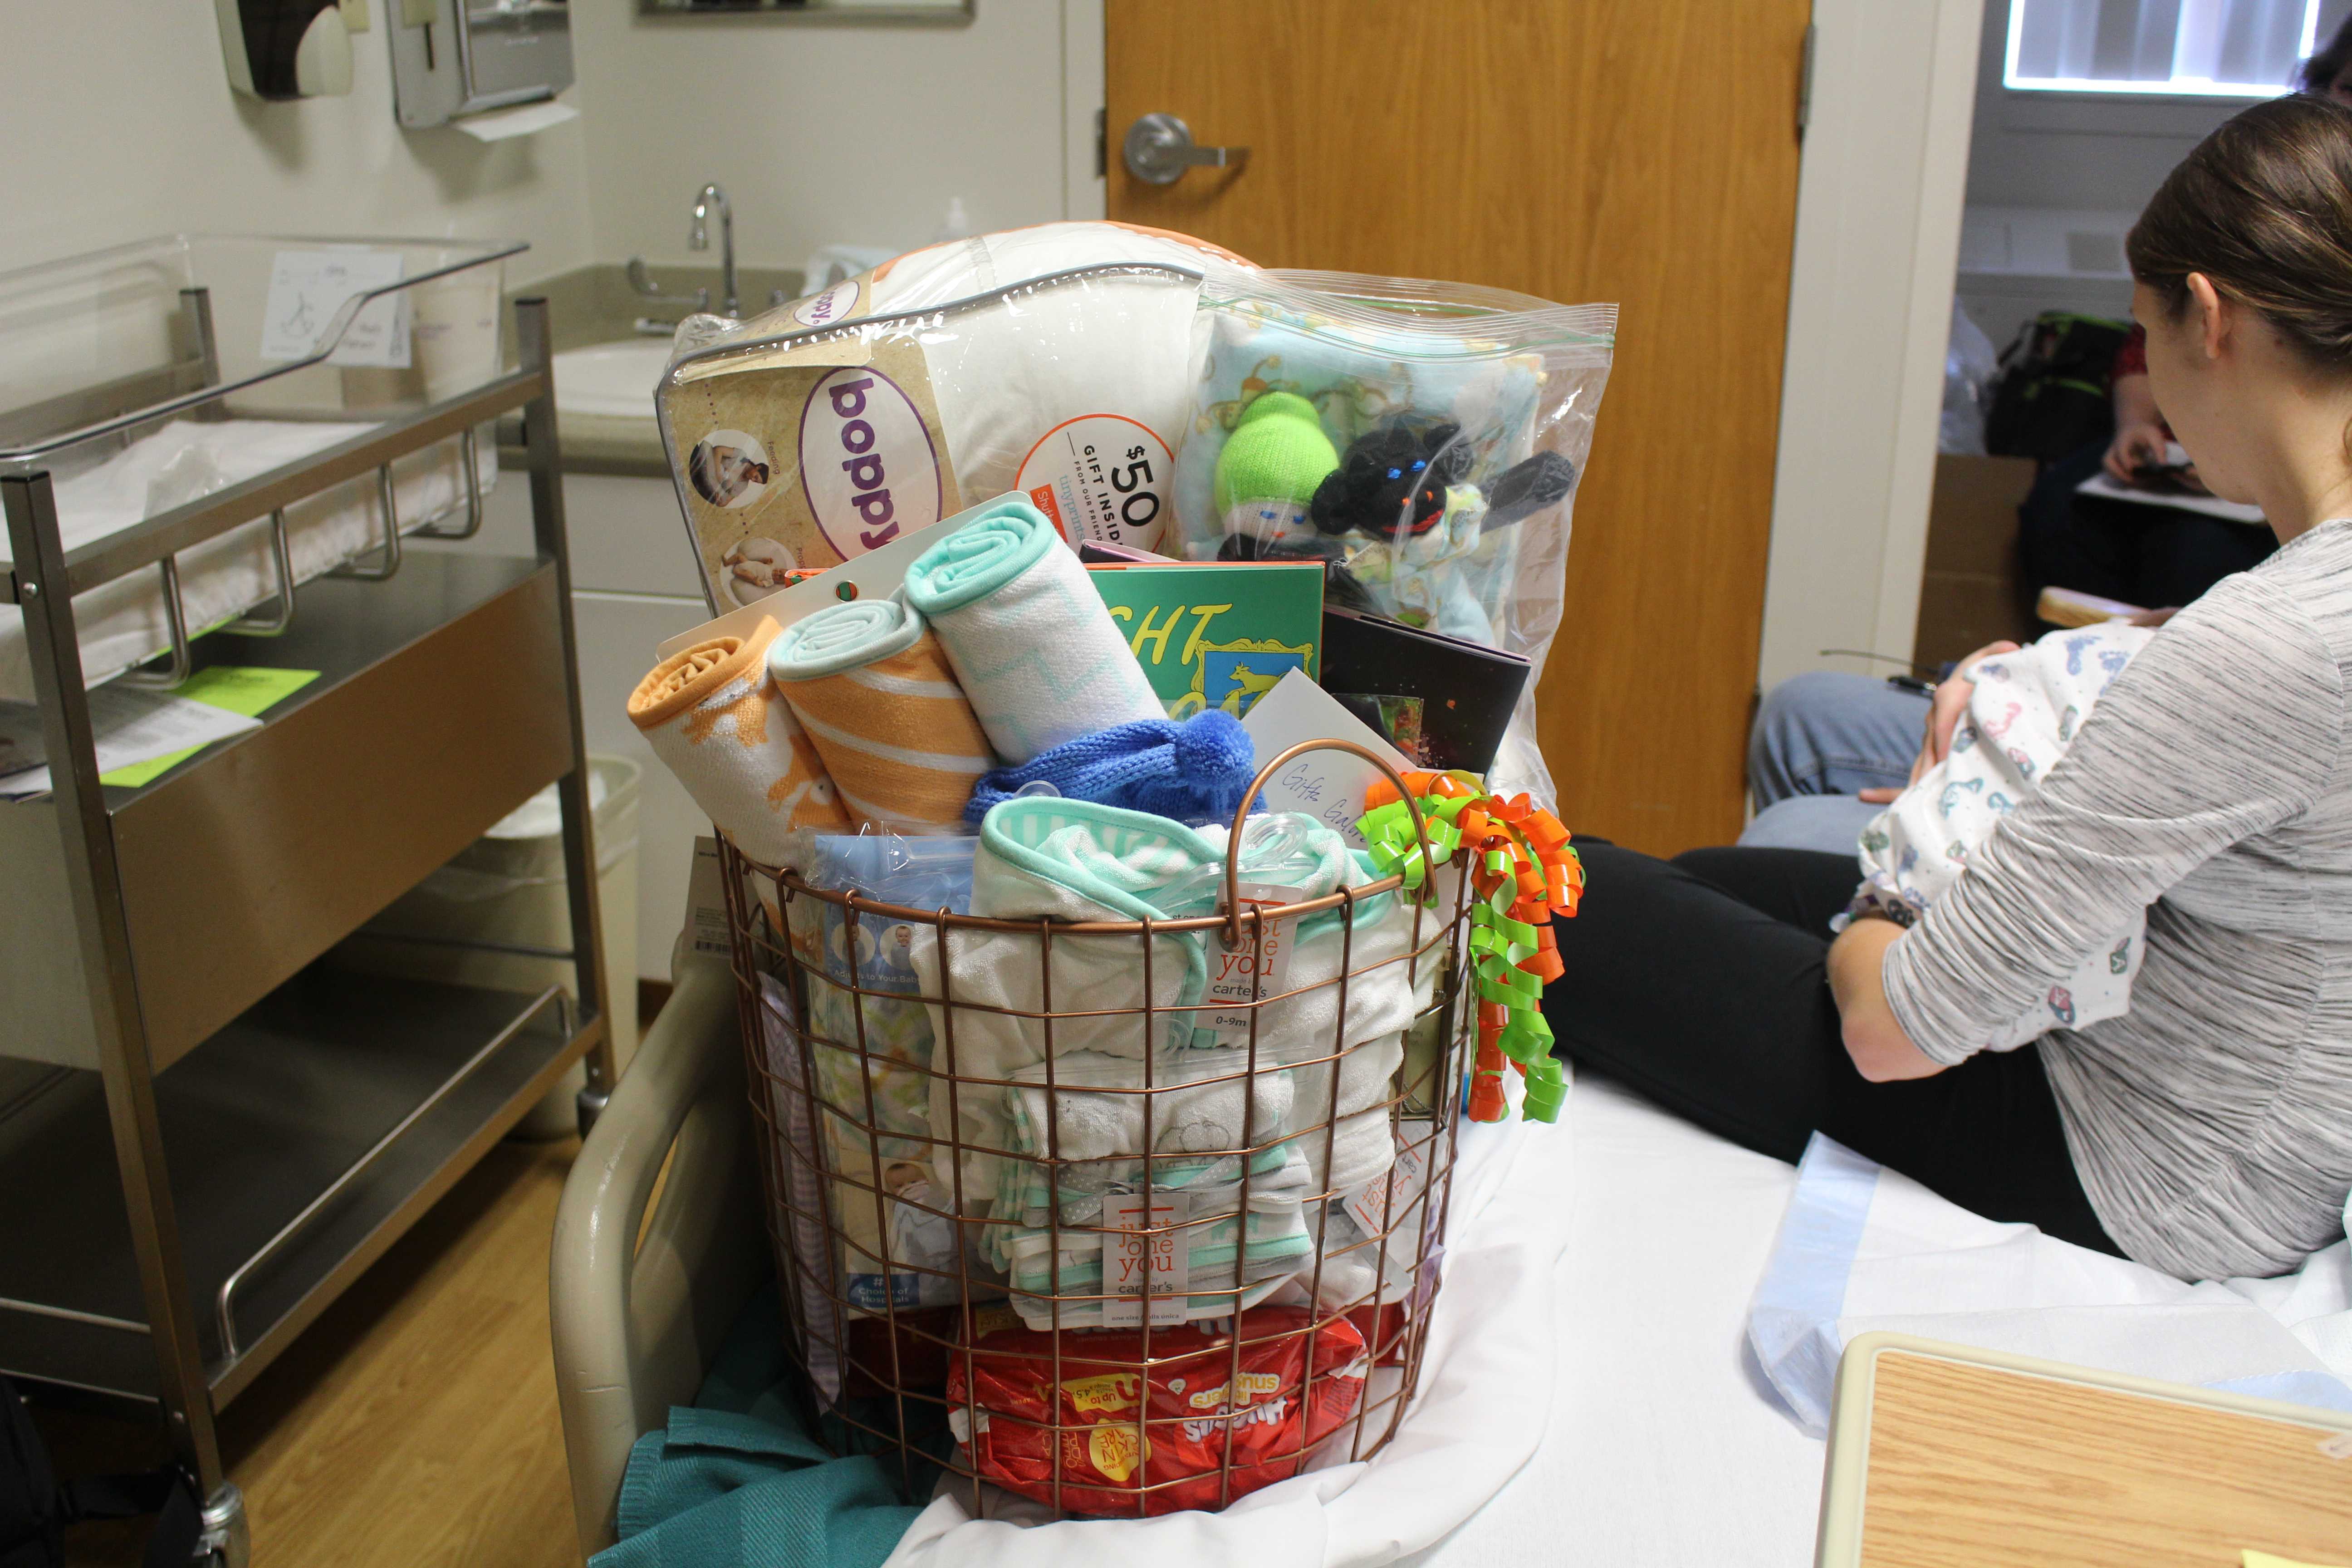 Basket of baby items from Dixie Regional Medical Center for 'Baby New Year 2017' presented to Josh and Amy Pruett at the hospital's 400 East Campus where Benjamin Pruett was born Sunday, St. George, Utah, Jan. 1, 2017 | Photo by Cody Blowers, St. George News